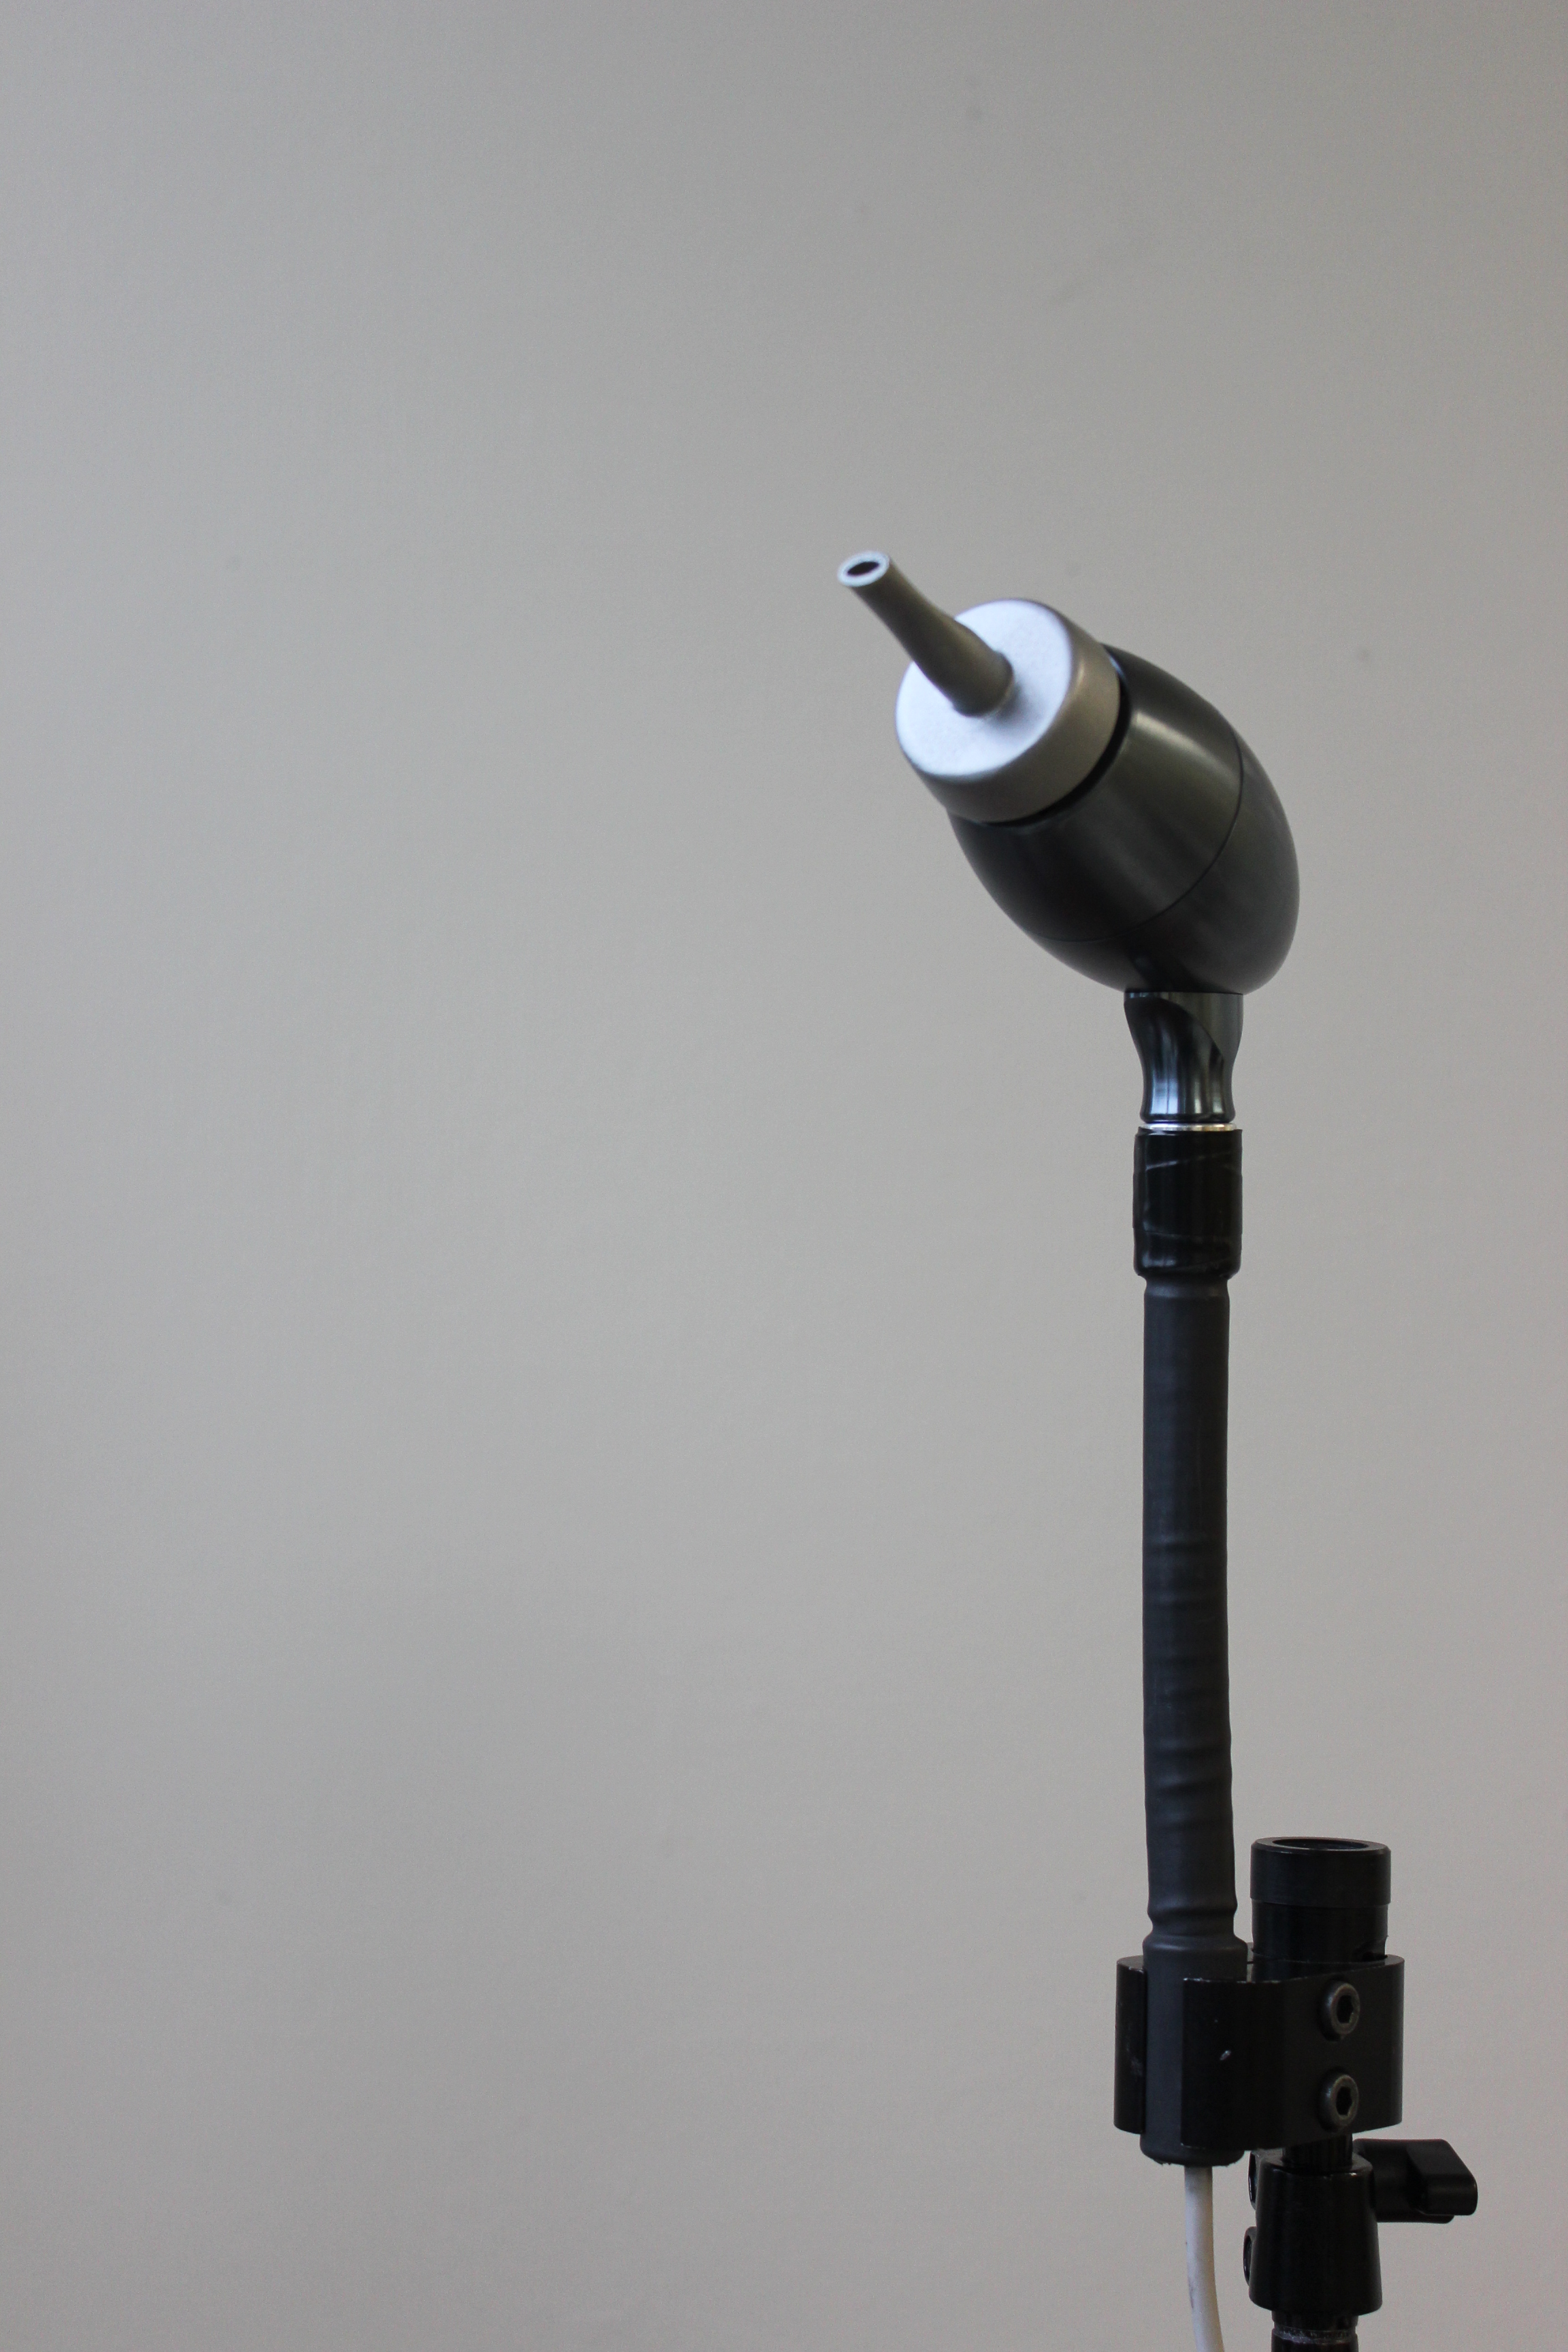 The LipSync, a mouth controlled input device that can be used with computers, laptops, phones and other mobile devices.